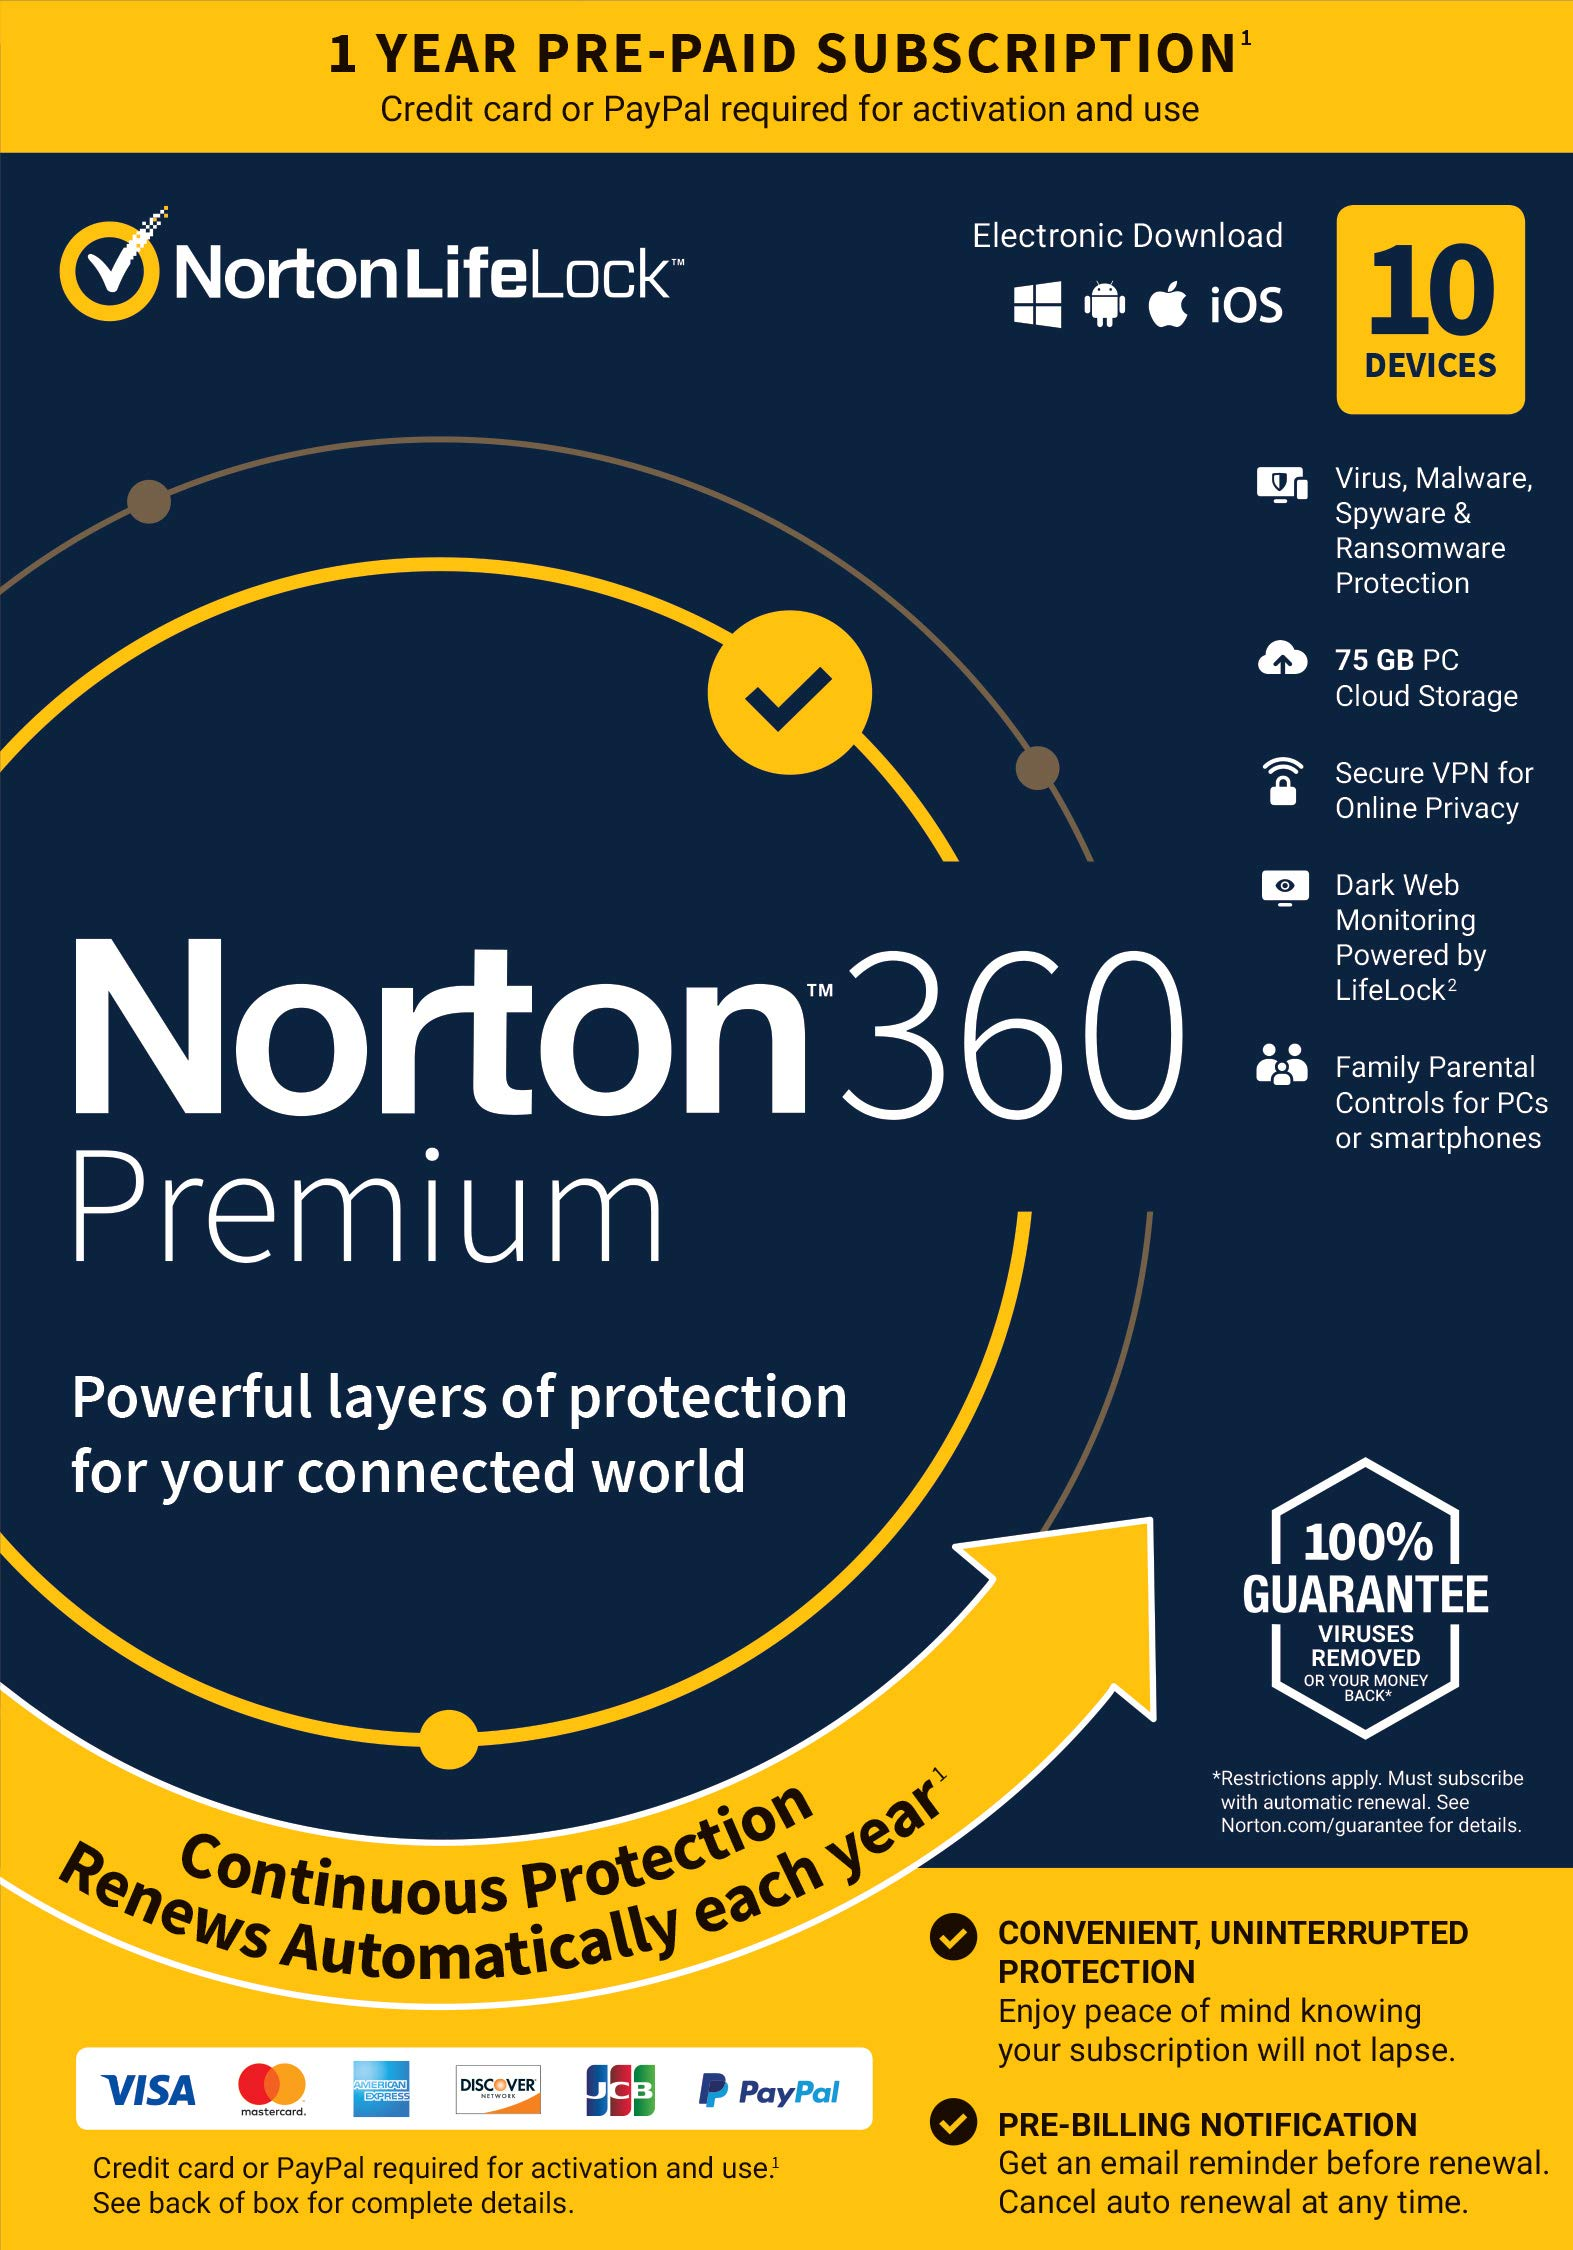 Norton 360 Premium  Antivirus Software for 10 Devices with Auto Renewal - Includes VPN, PC Cloud Backup & Dark Web Monitoring Powered by LifeLock [Key card]